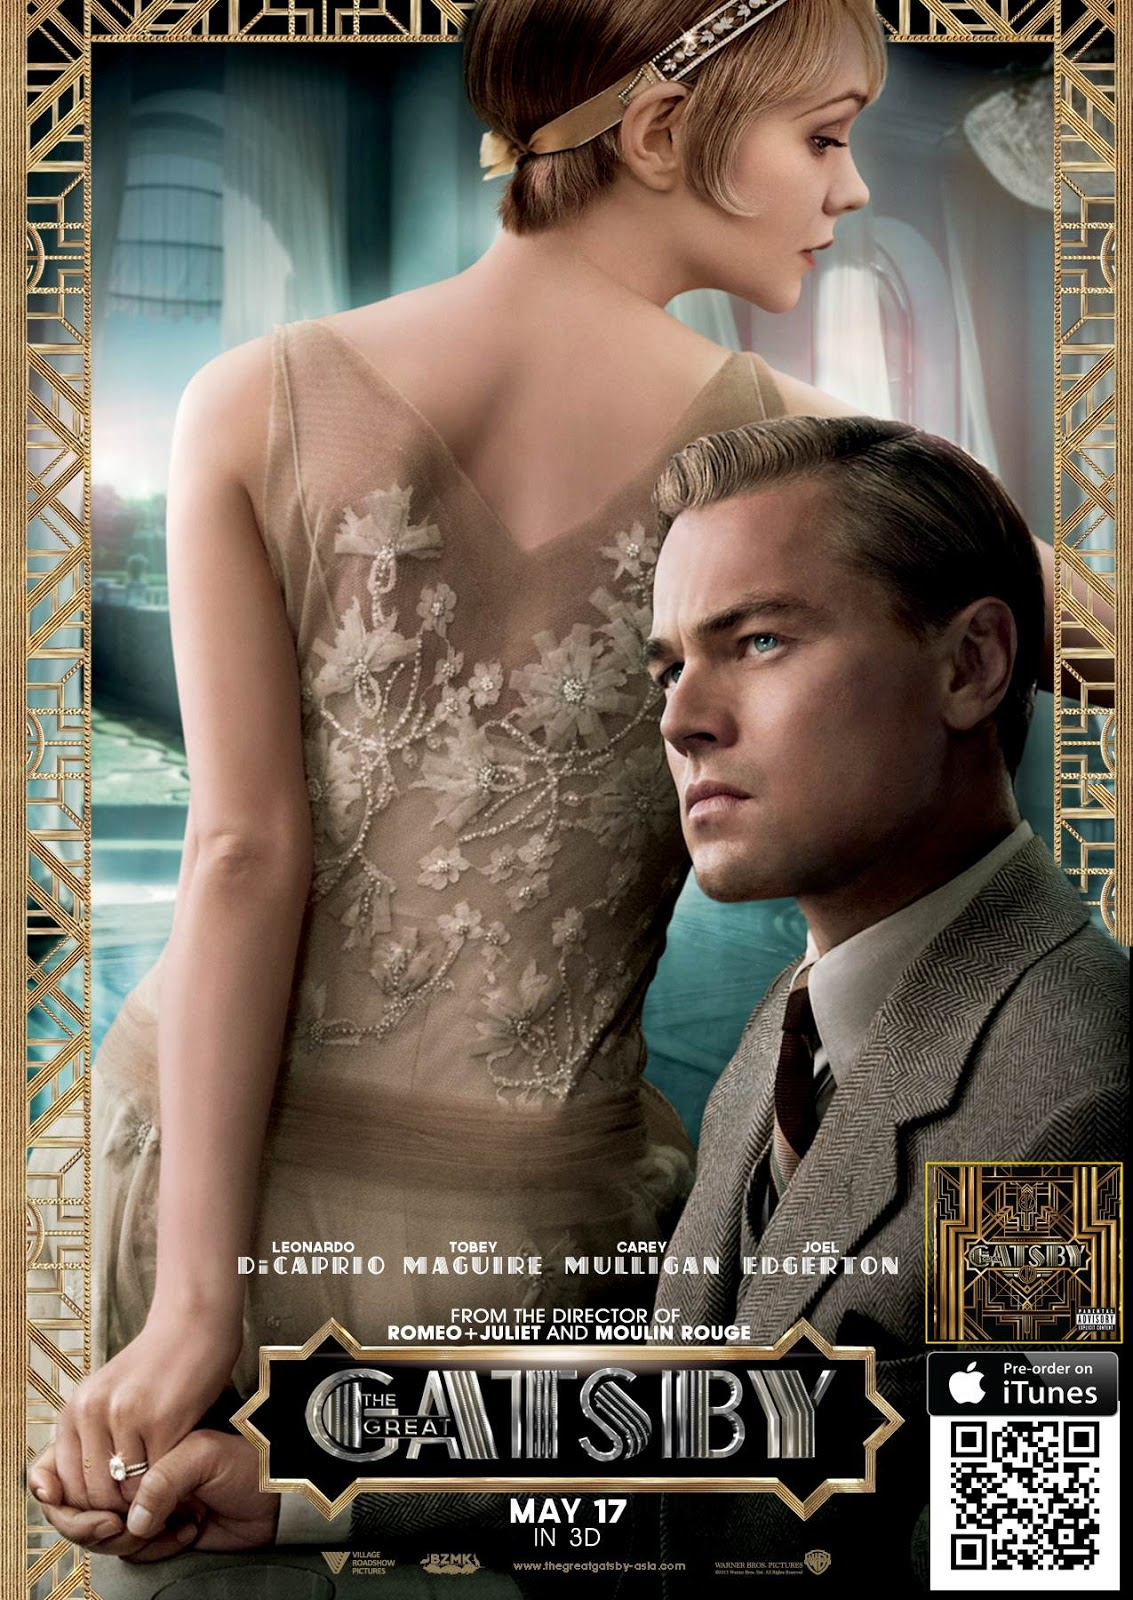 THE GREAT GATSBY Soundtrack Released; Film Opens in PH May 17